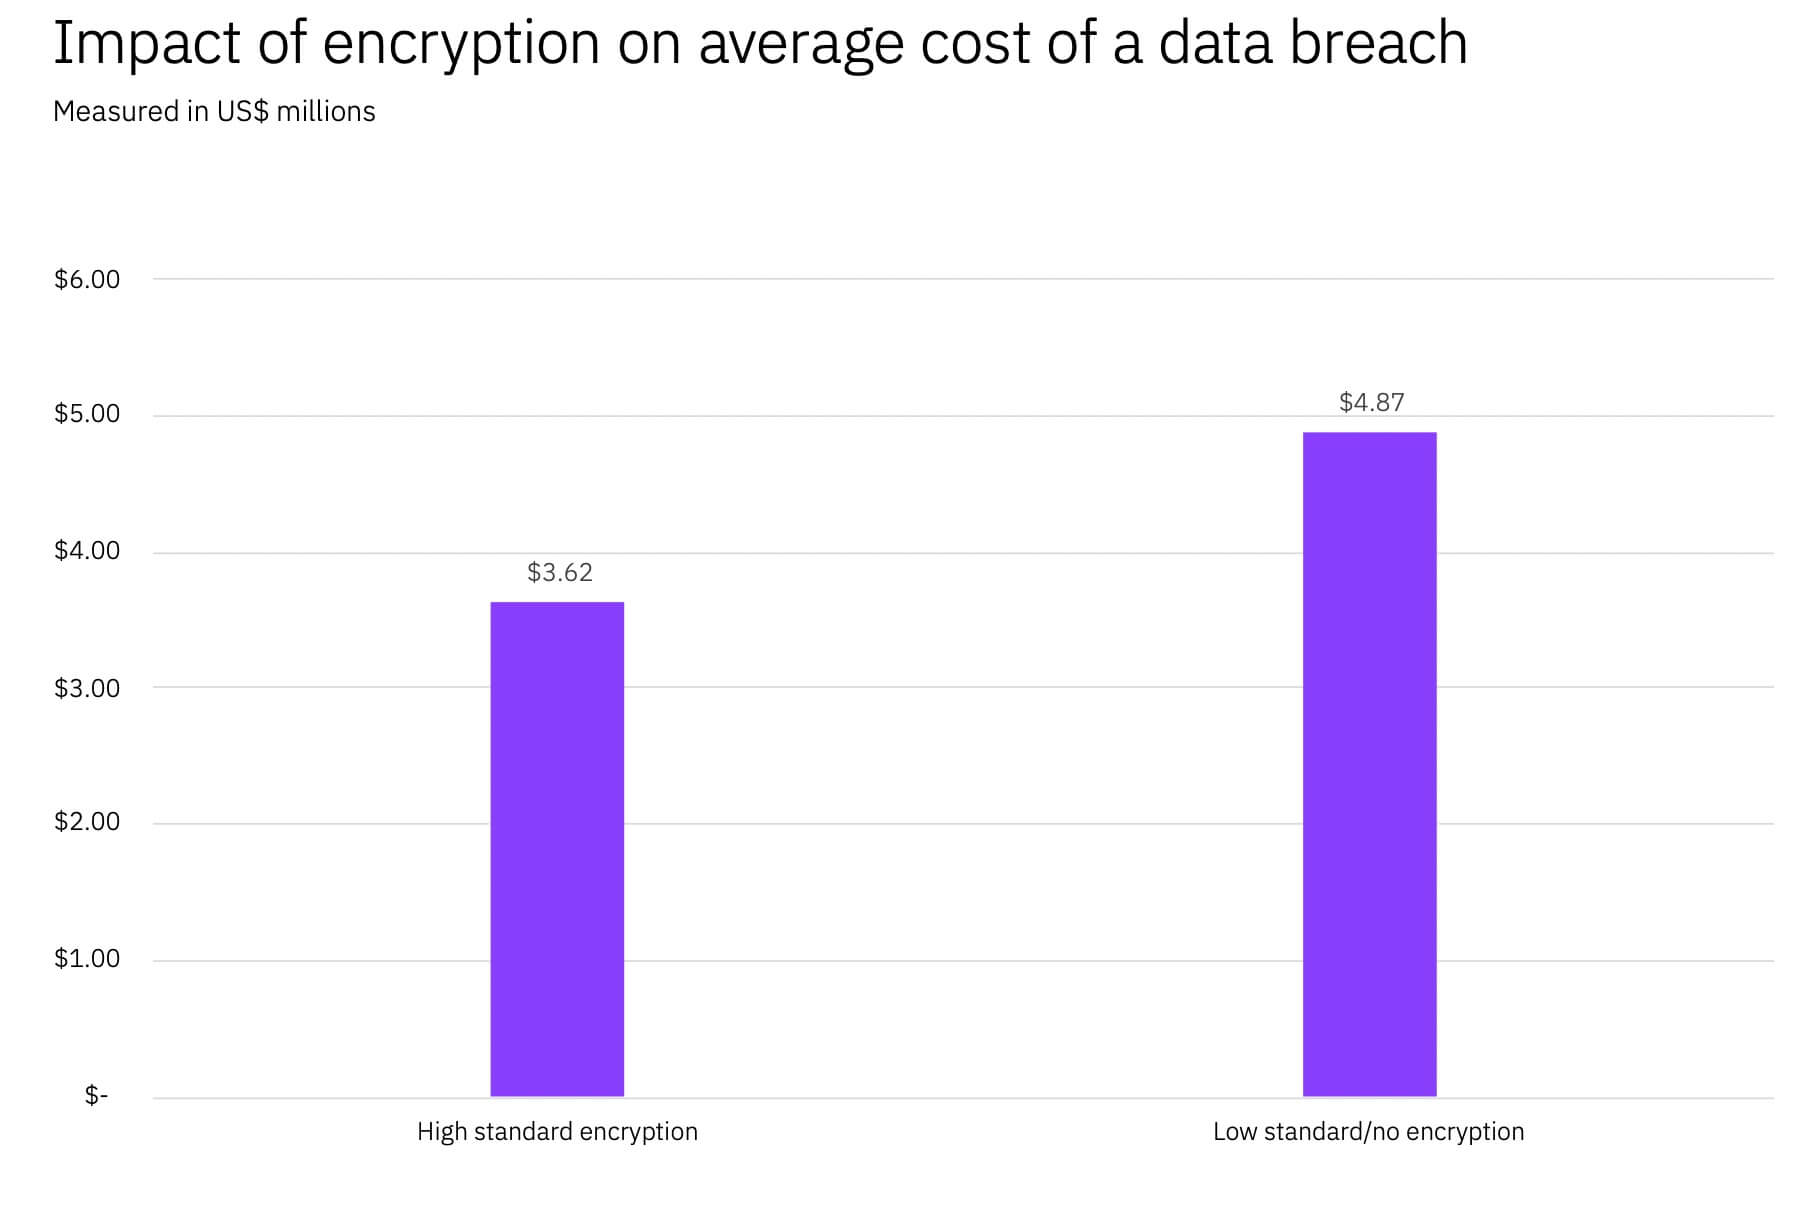 impact of encryption on average data breach cost